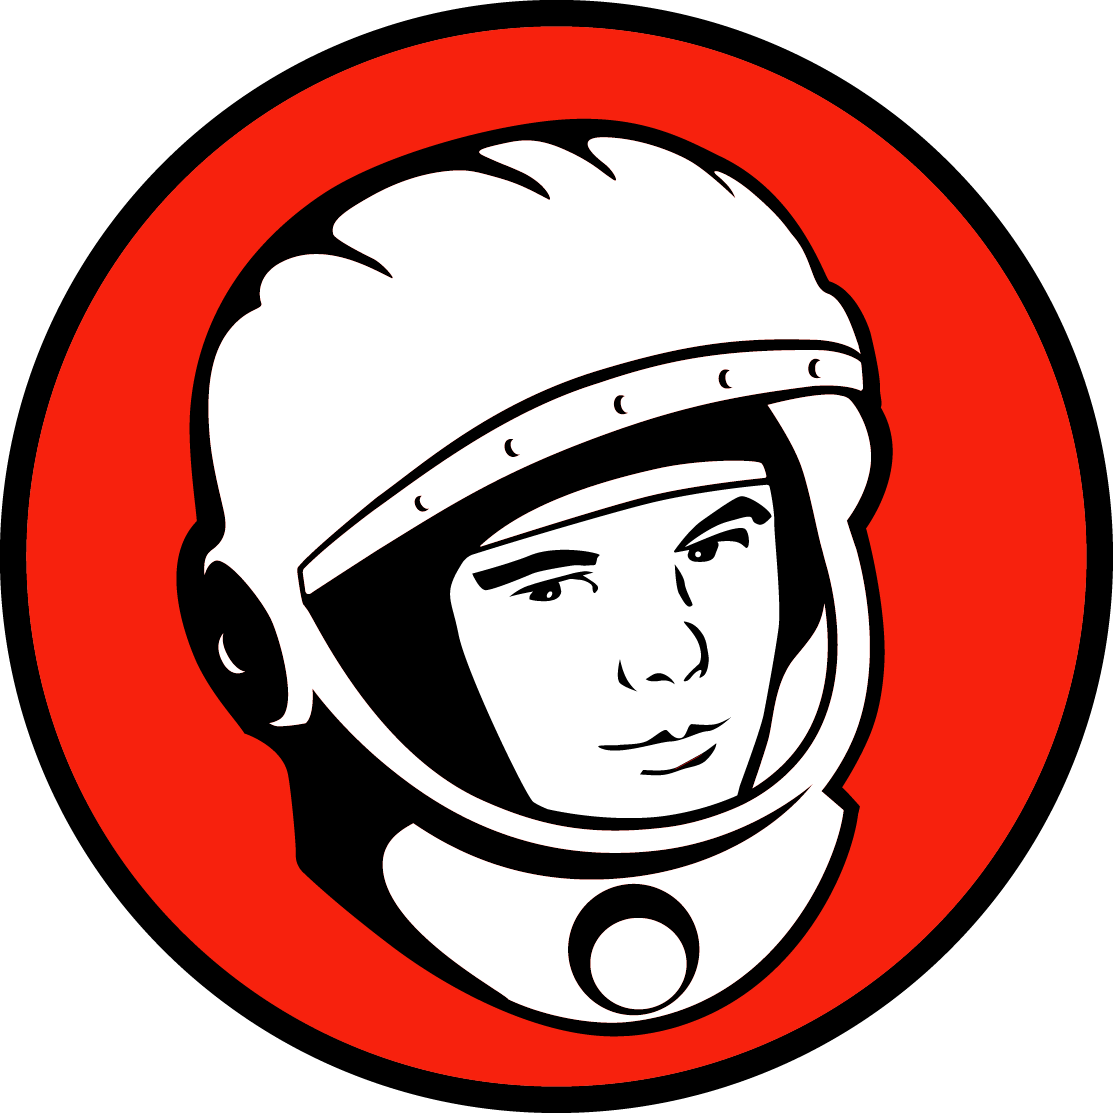 Planet clipart space party. We ve opened registration